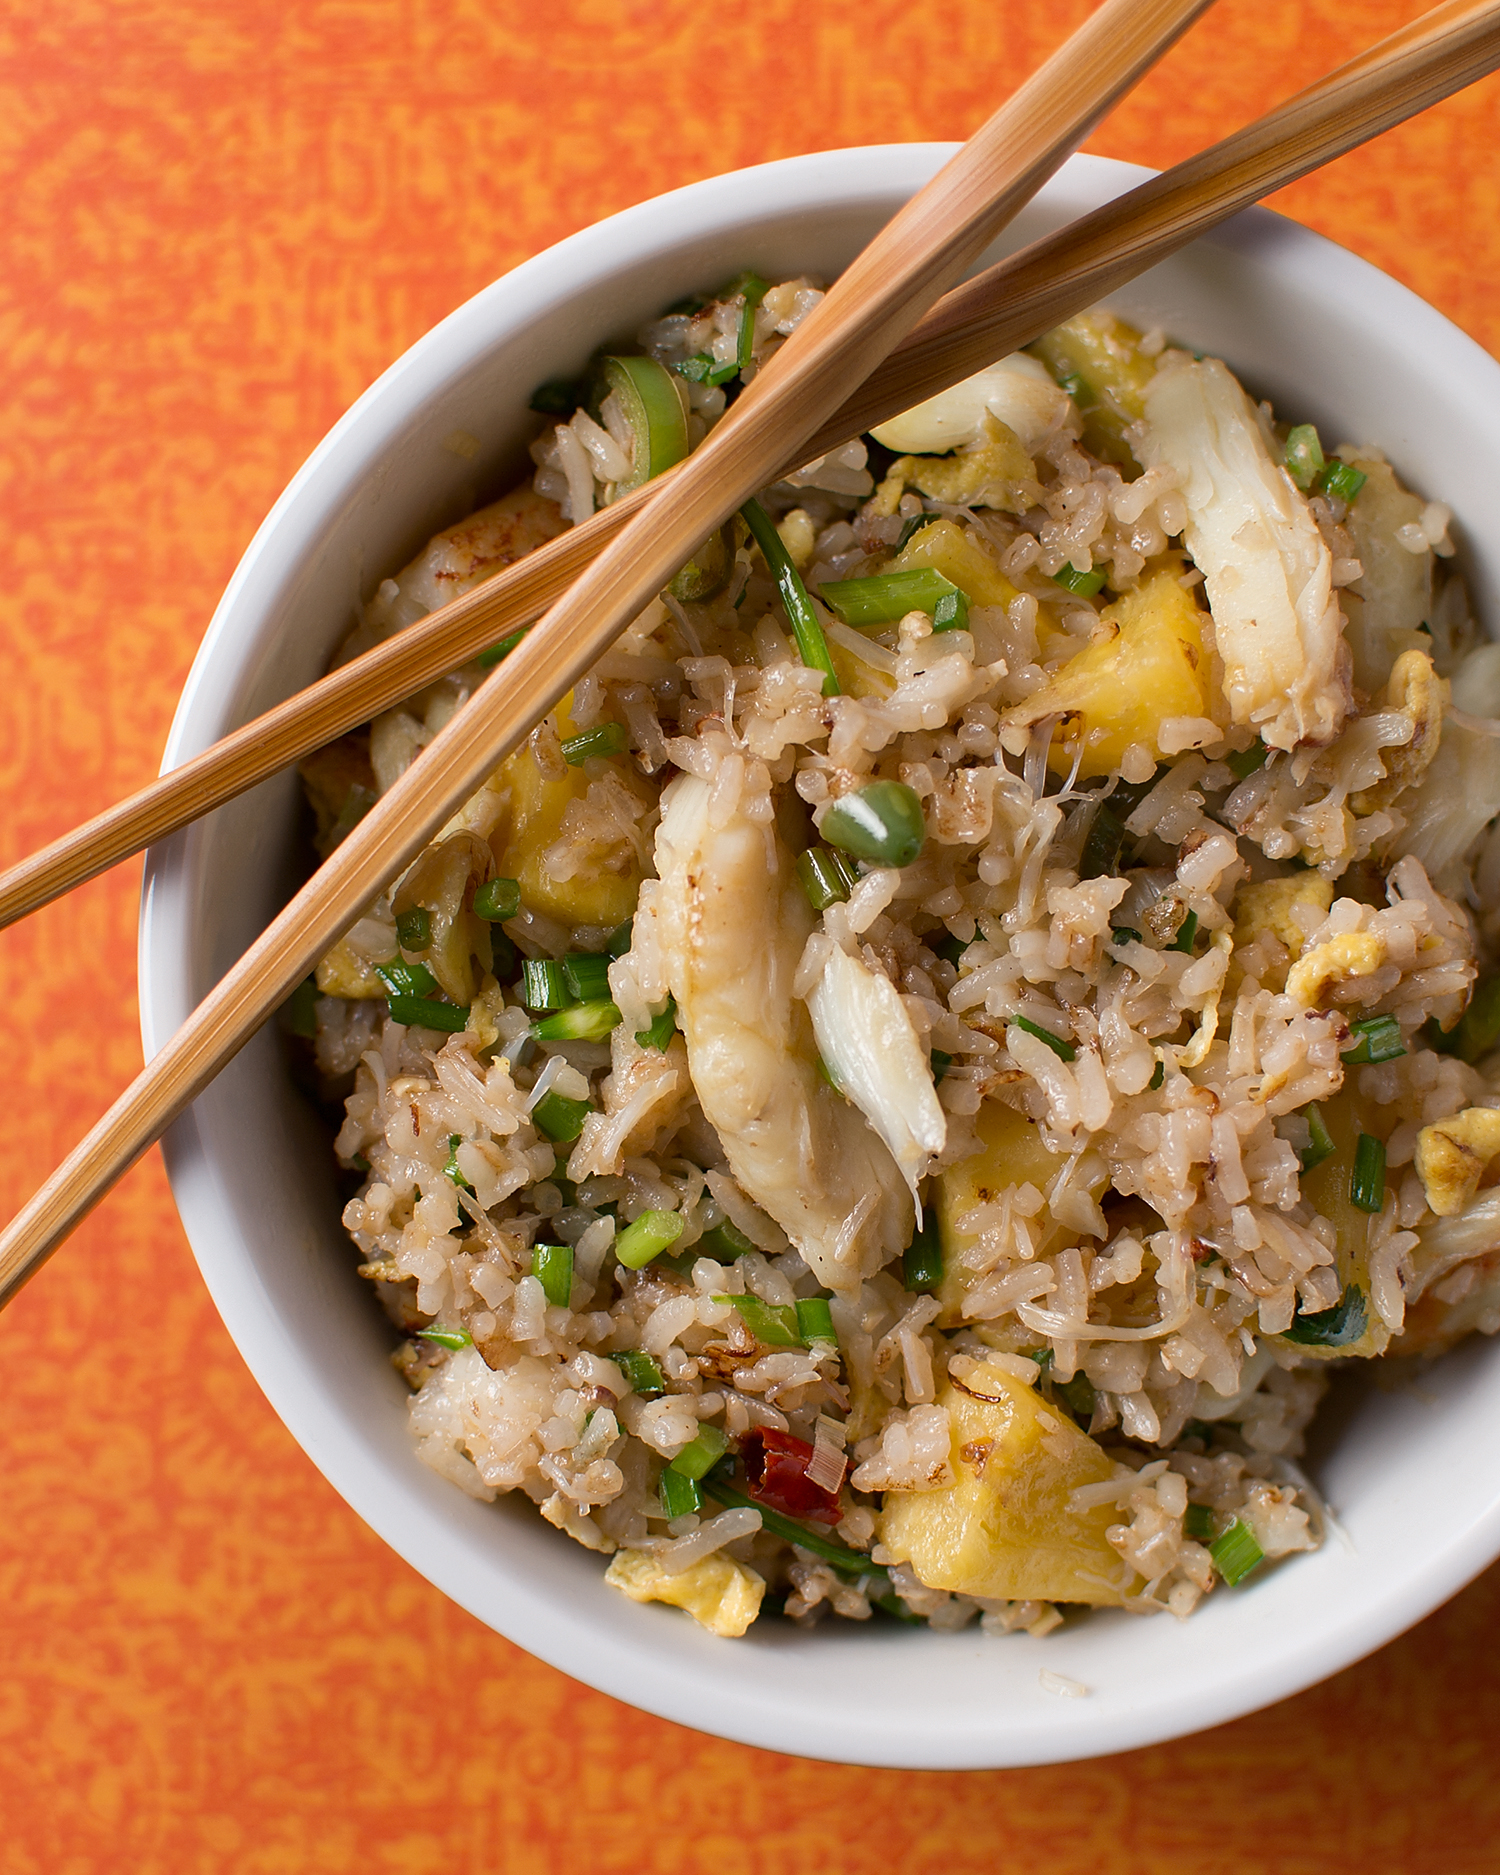 Crab Fried Rice Recipe Tested and Giveaway!Ends in 69 days.